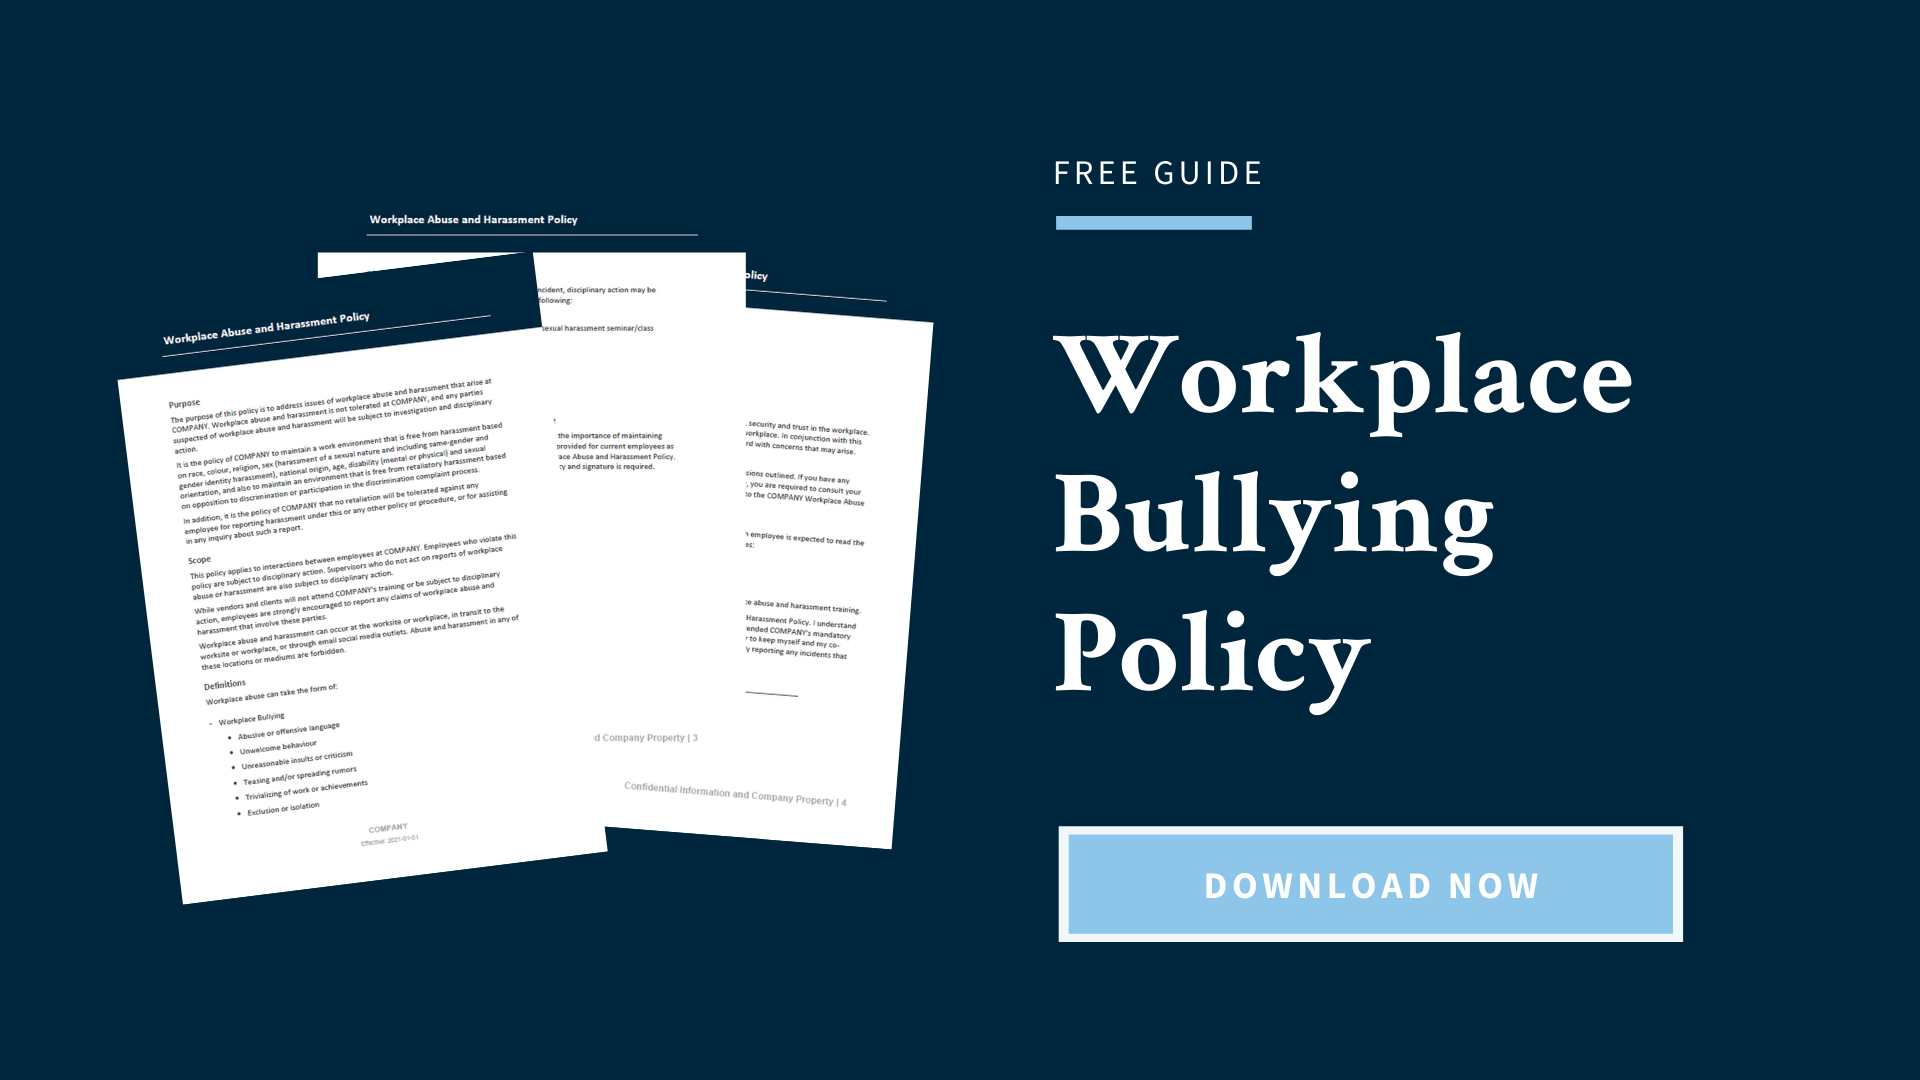 Download for free: Workplace Bullying Policy